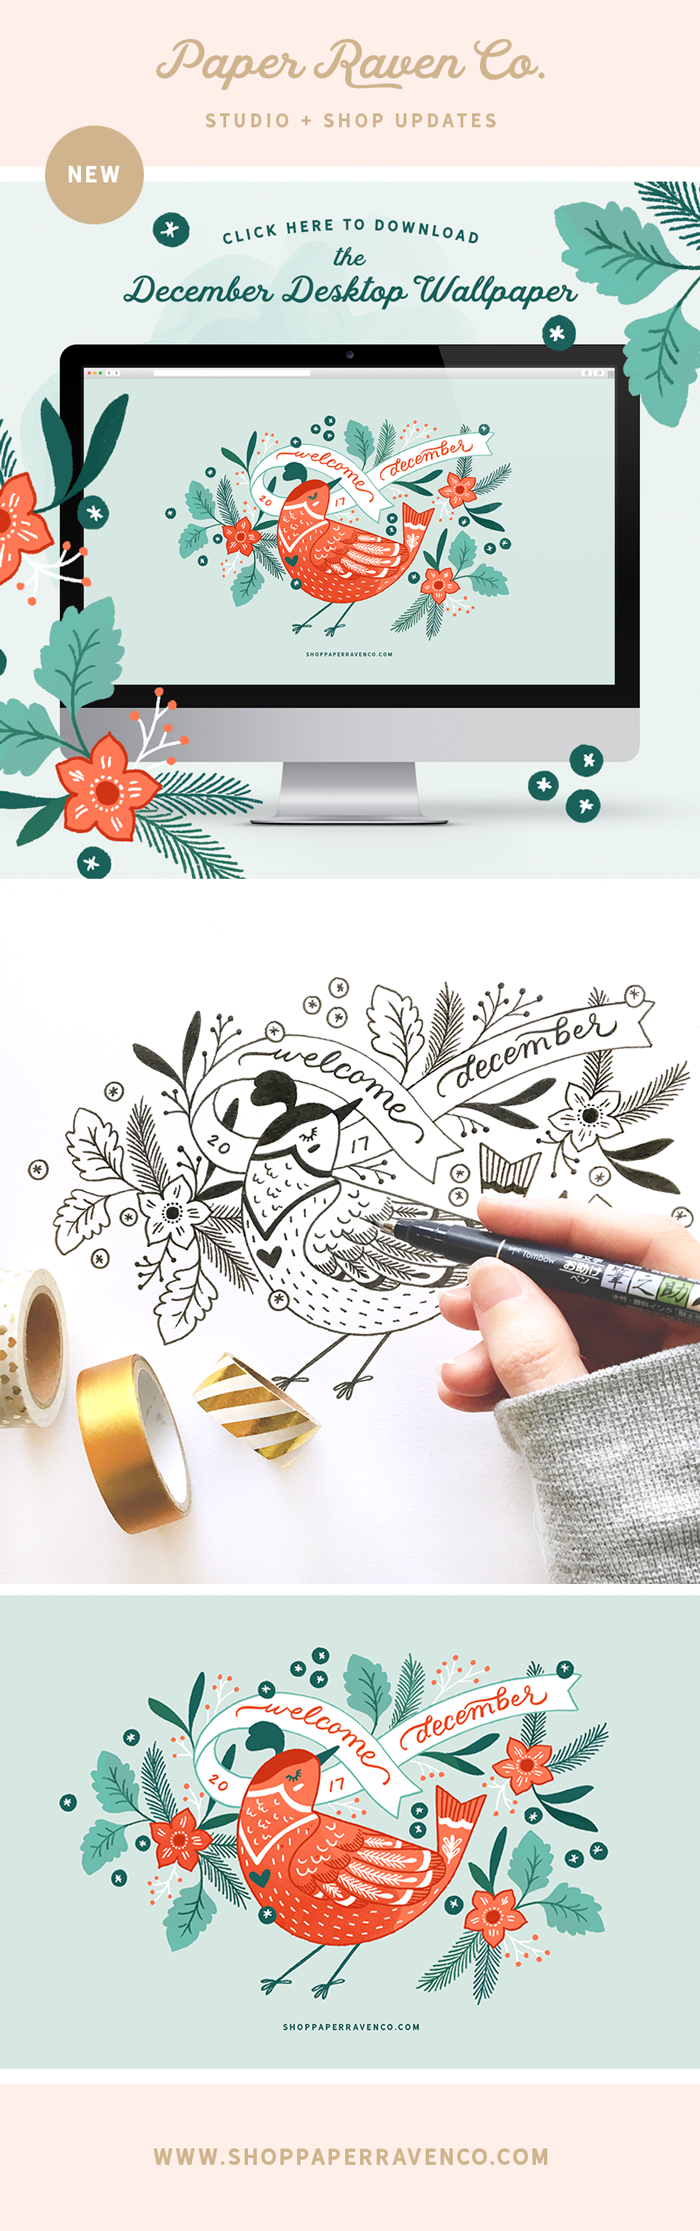 Paper Raven Co. December Illustrated Desktop Download - www.ShopPaperRavenCo.com